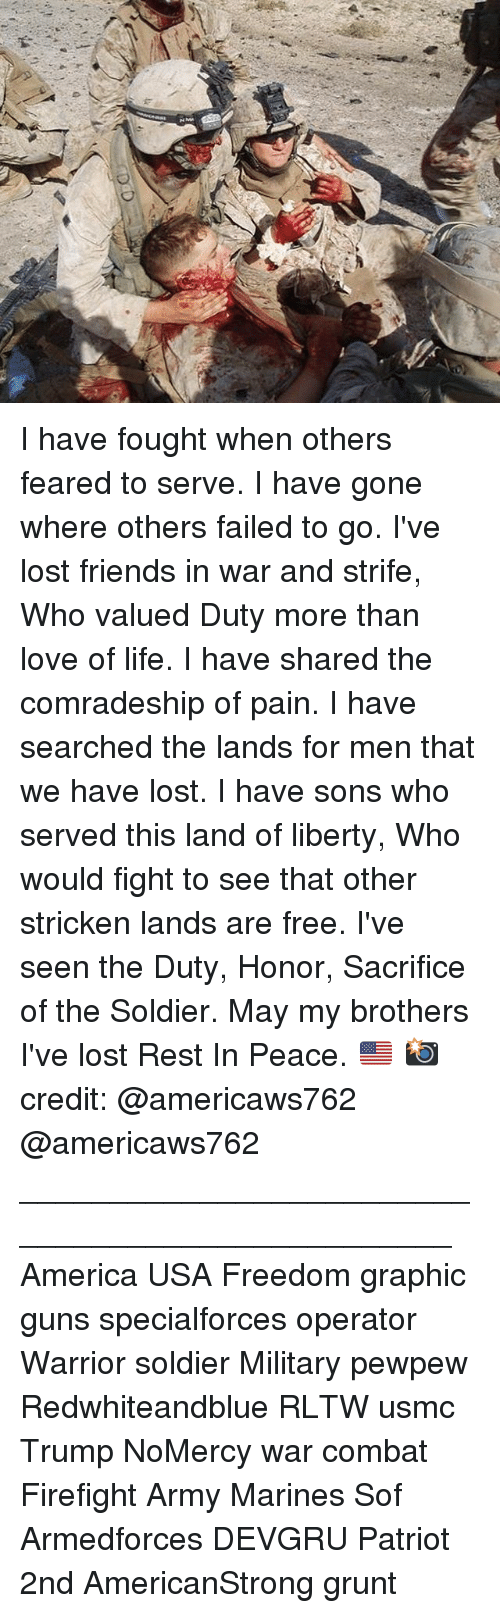 America, Friends, and Guns: I have fought when others feared to serve. I have gone where others failed to go. I've lost friends in war and strife, Who valued Duty more than love of life. I have shared the comradeship of pain. I have searched the lands for men that we have lost. I have sons who served this land of liberty, Who would fight to see that other stricken lands are free. I've seen the Duty, Honor, Sacrifice of the Soldier. May my brothers I've lost Rest In Peace. 🇺🇸 📸 credit: @americaws762 @americaws762 _________________________________________________ America USA Freedom graphic guns specialforces operator Warrior soldier Military pewpew Redwhiteandblue RLTW usmc Trump NoMercy war combat Firefight Army Marines Sof Armedforces DEVGRU Patriot 2nd AmericanStrong grunt